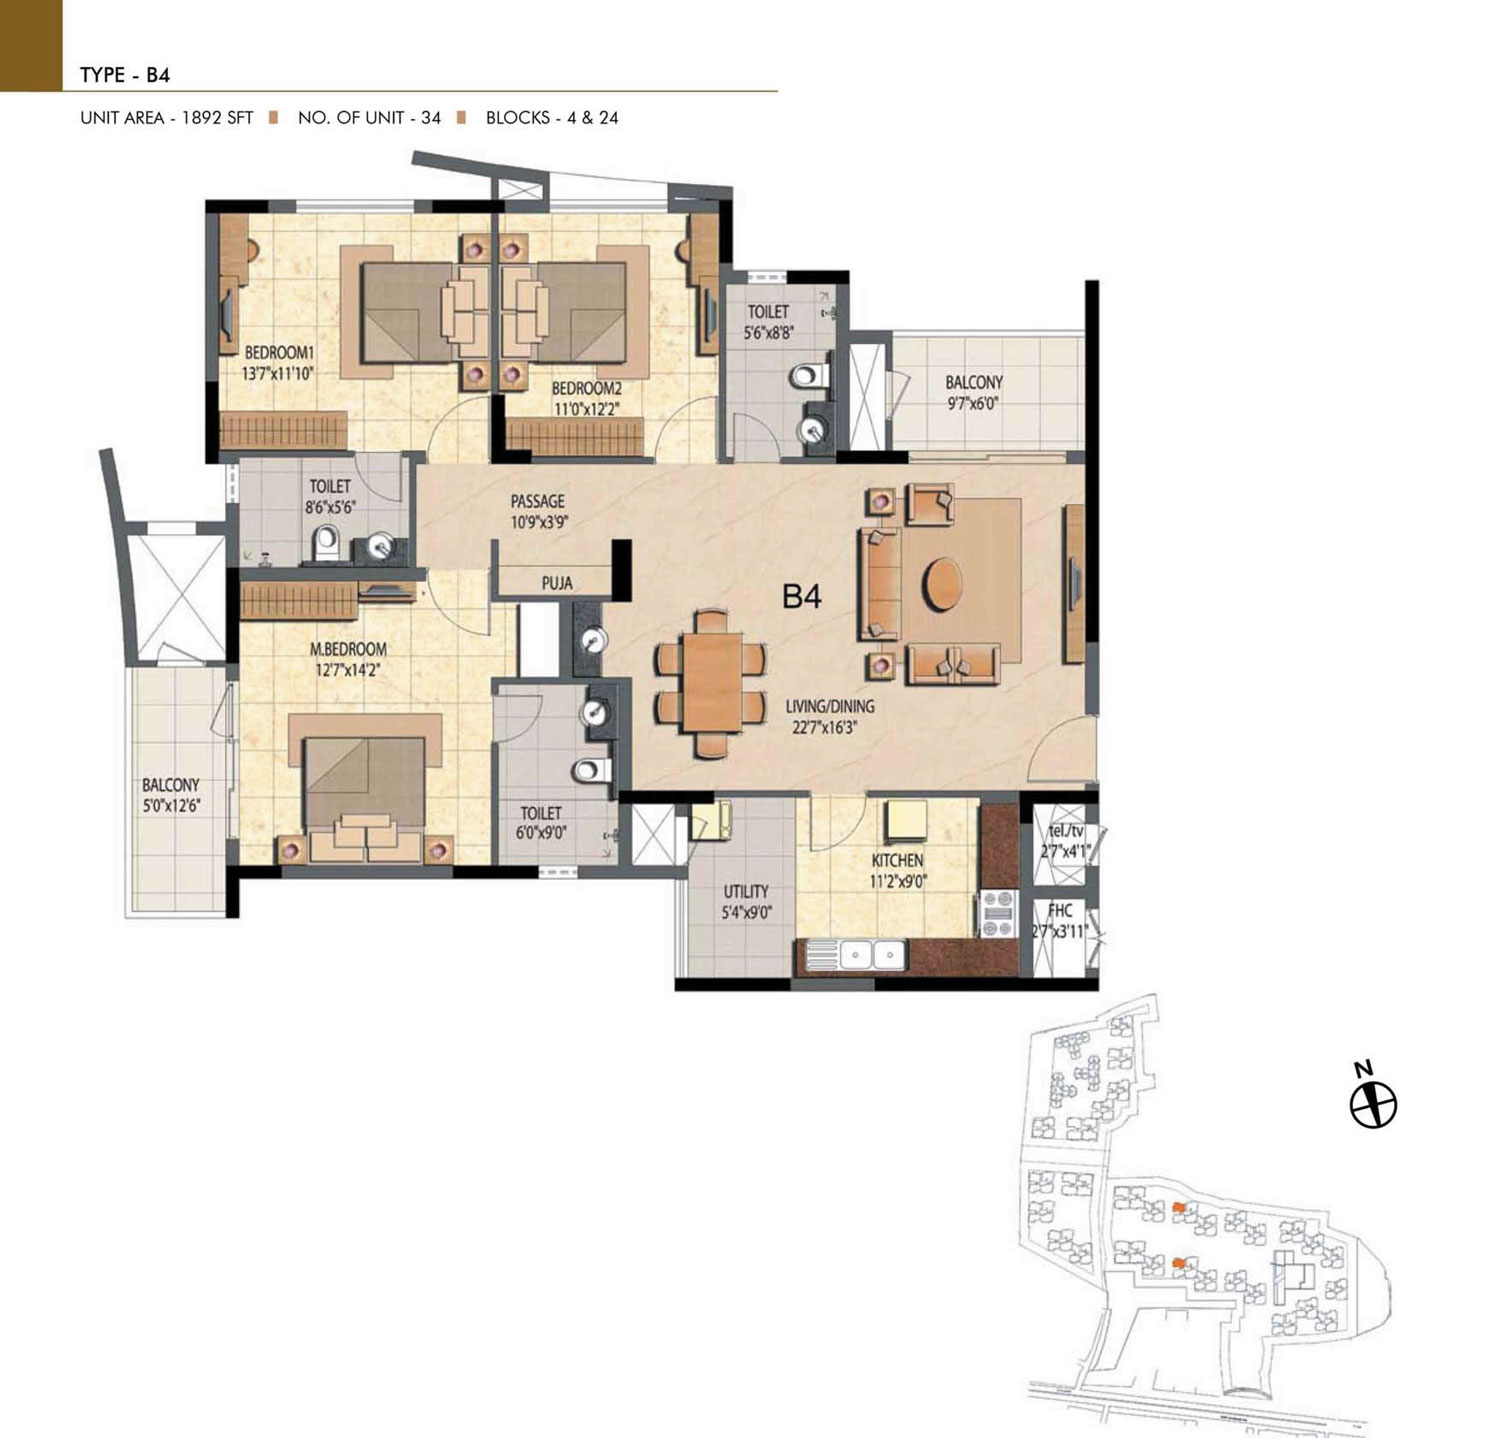 Type B4 - 3 Bed - 1892 Sq Ft